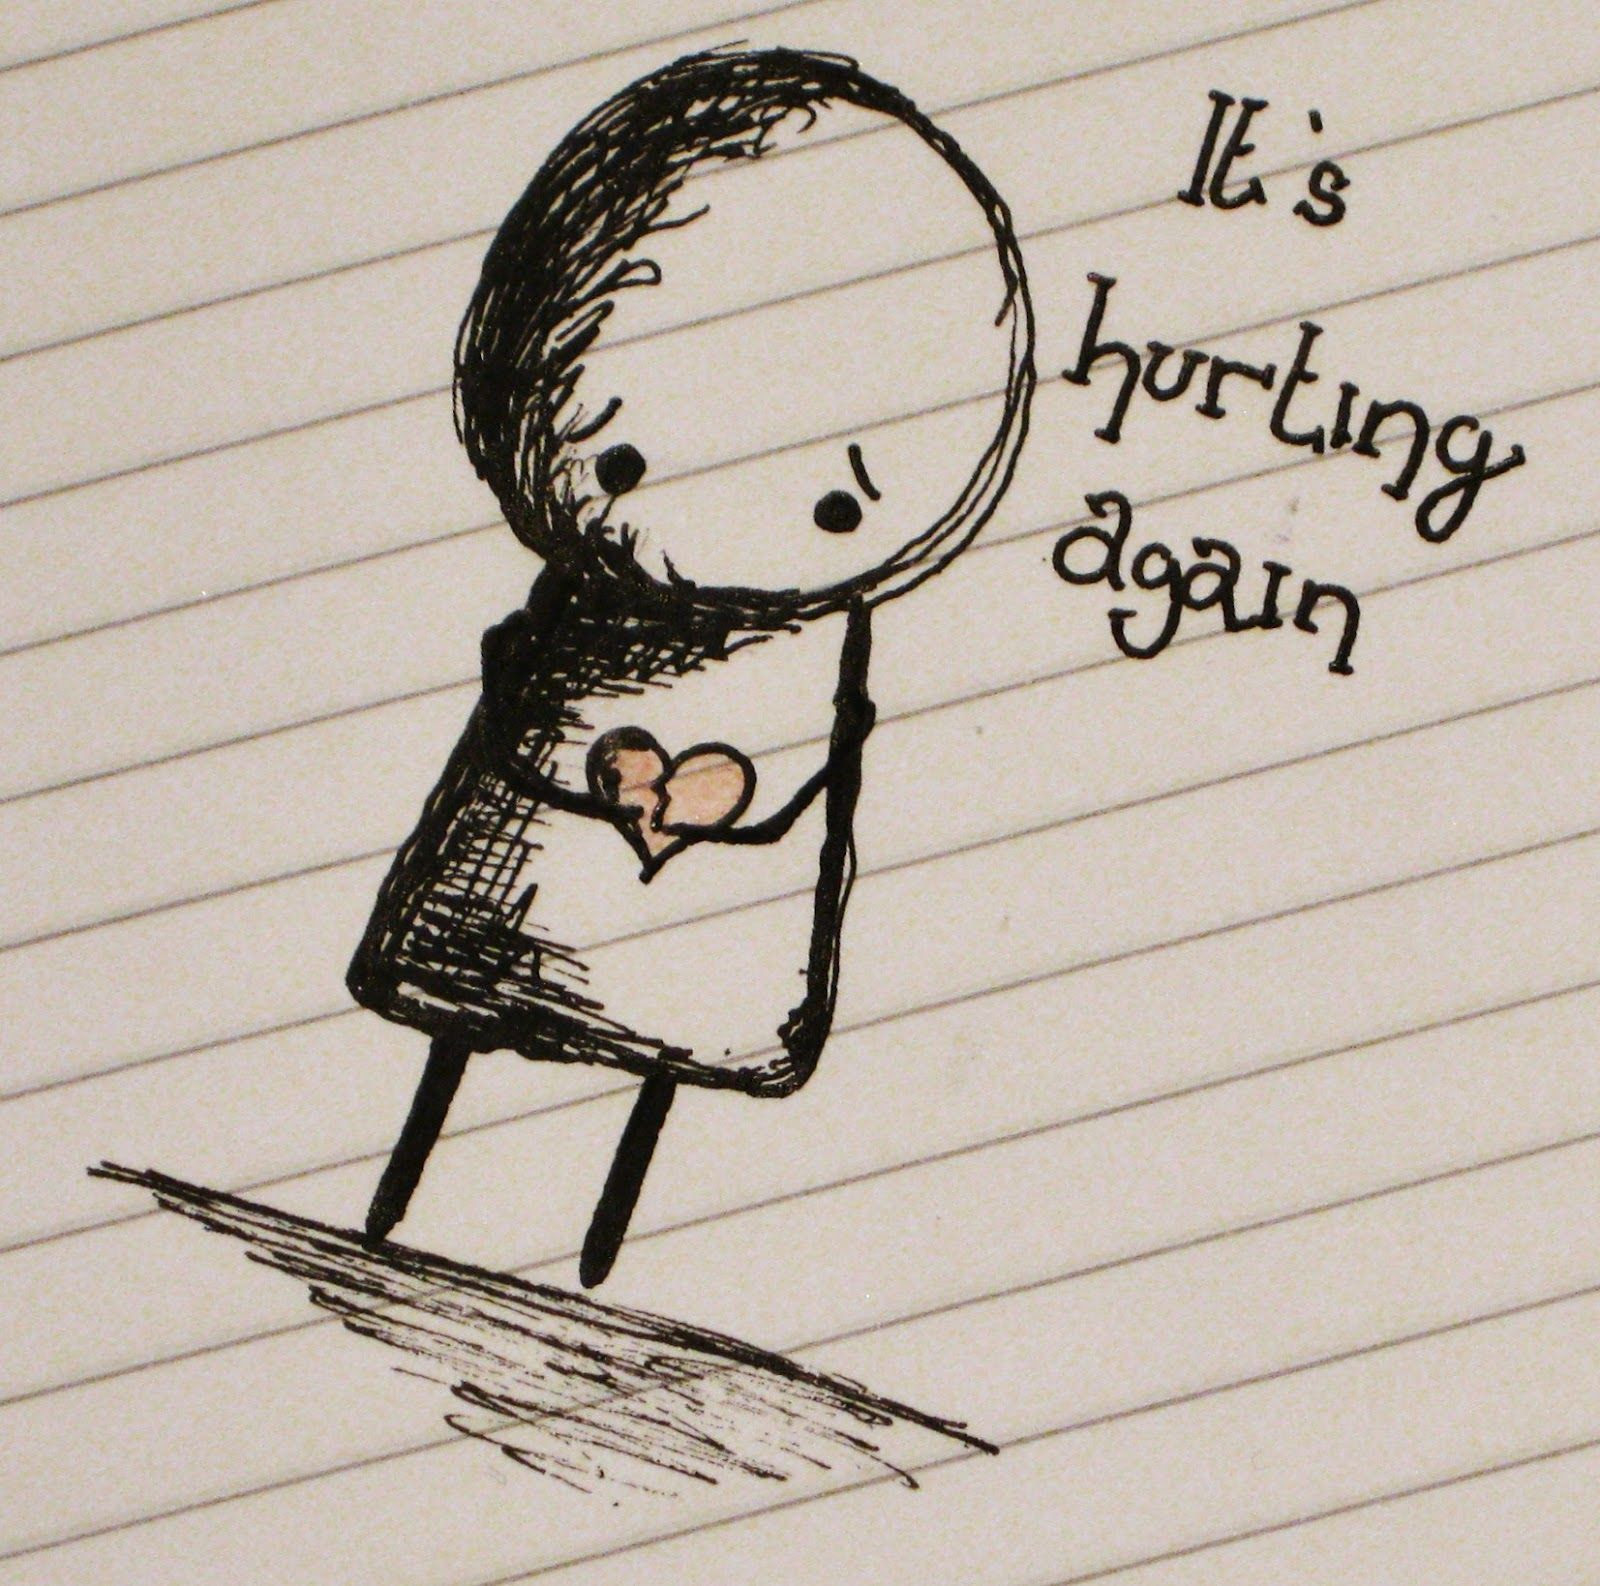 Hurt Wallpapers Free Love Wallpapers For Mobile Cell Phone